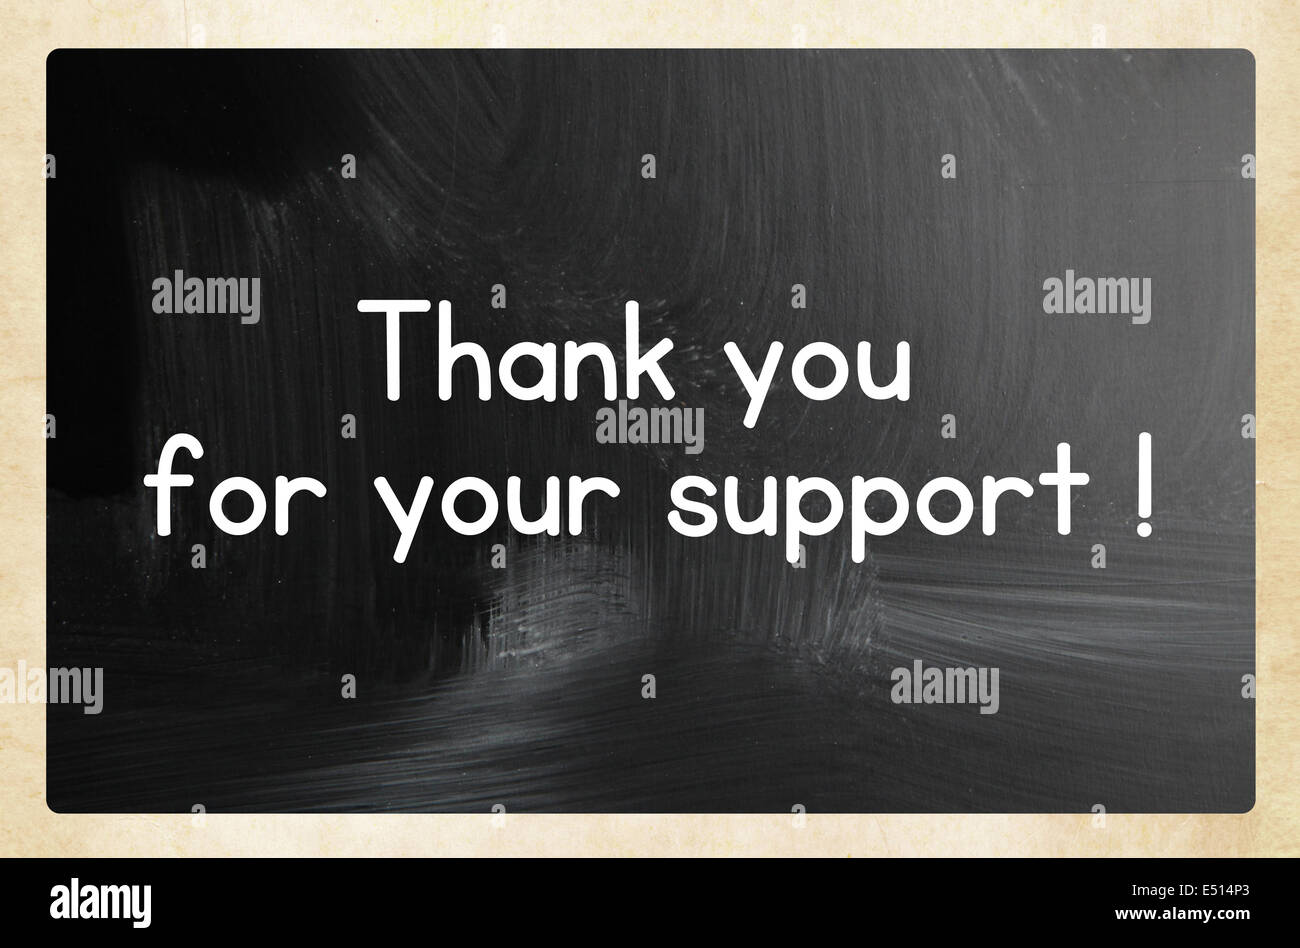 thank you for your support ! - Stock Image